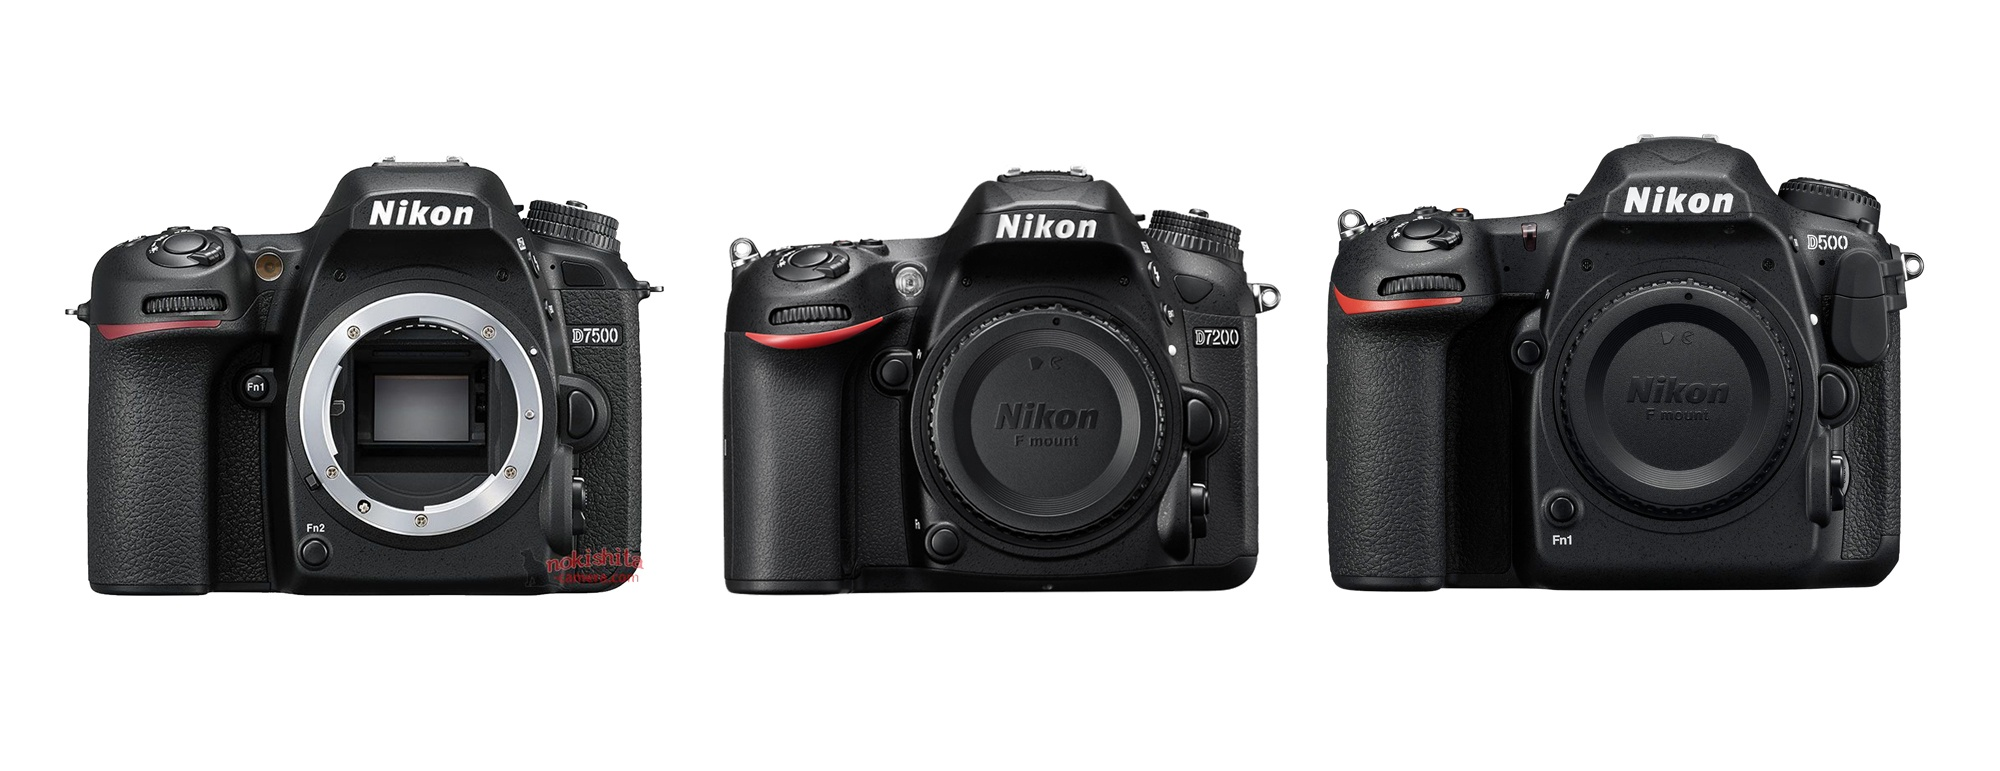 More Pictures Of The Nikon D7500 Dslr Camera Leaked Online